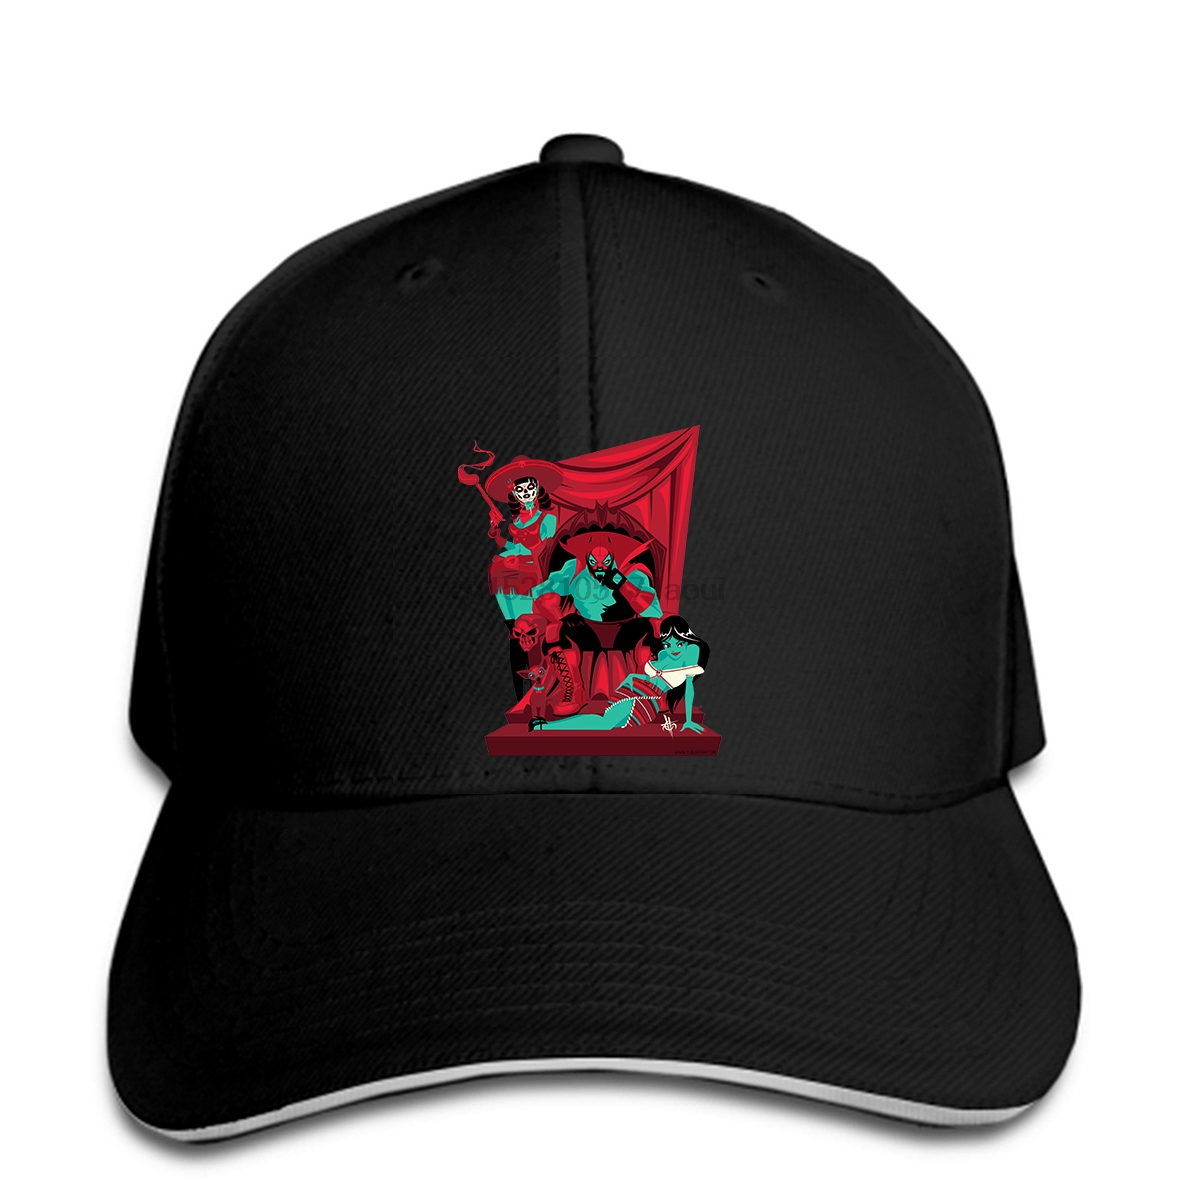 Baseball Cap Custom Printed Snapback Men Print Hat El Black Bat - Lucha Libre Women Baseball Caps Suitable For Men And Women Of All Ages In All Seasons